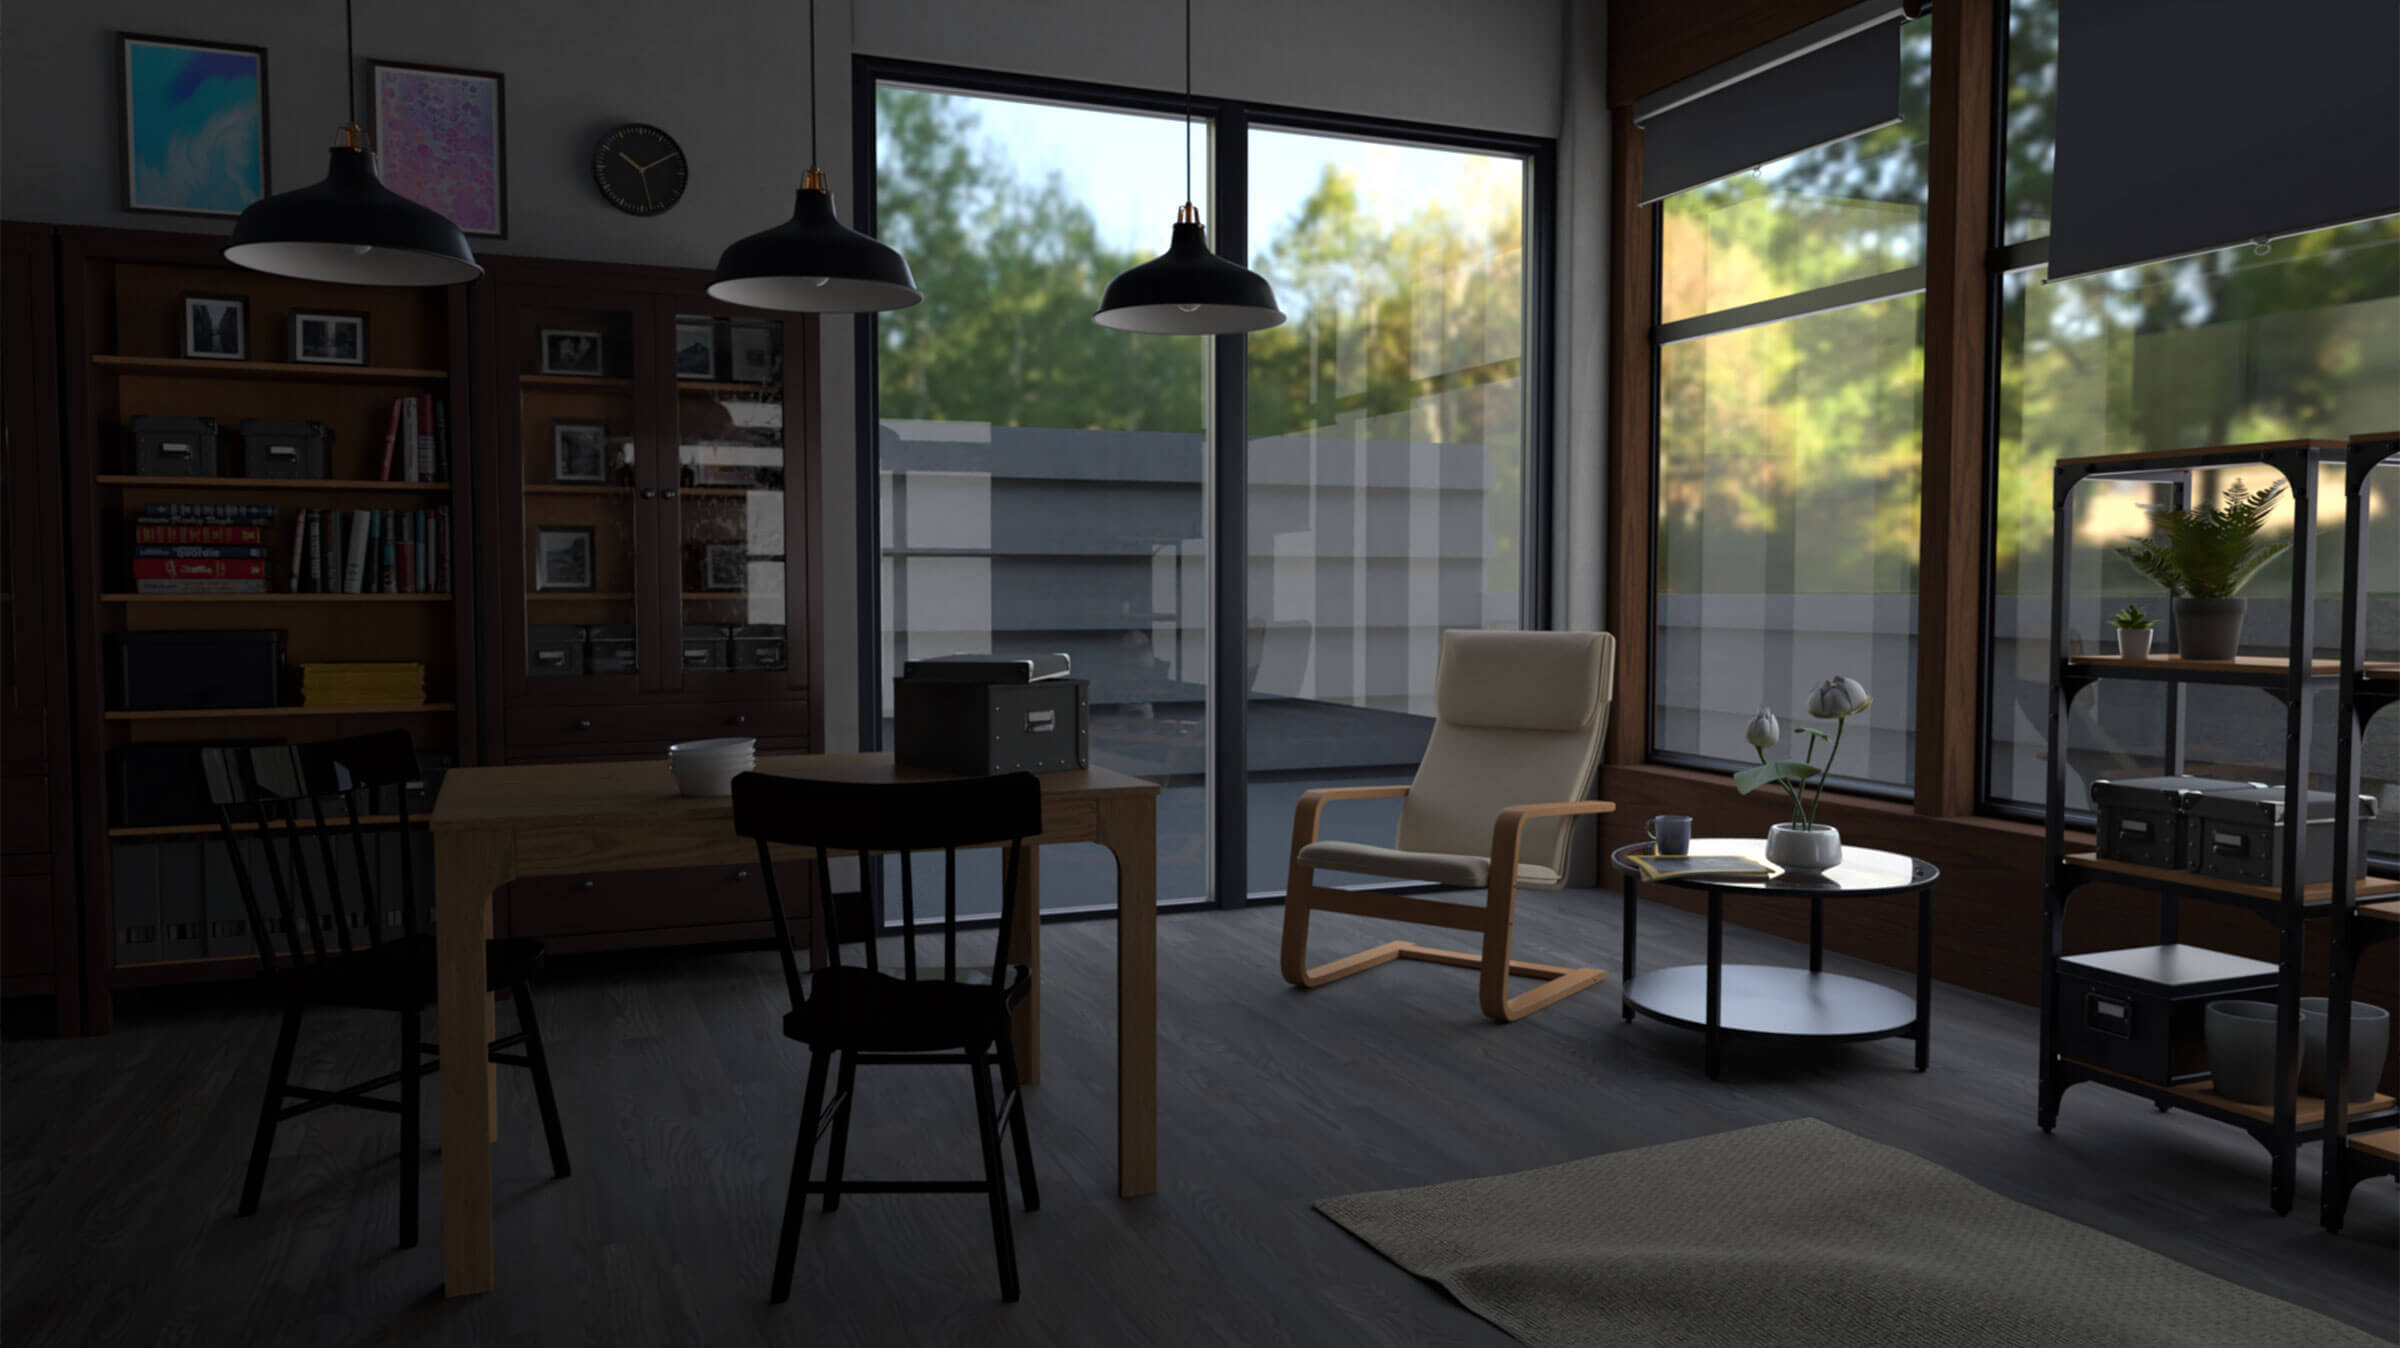 3D-modeled scene of a lounge looking out into a fenced yard.